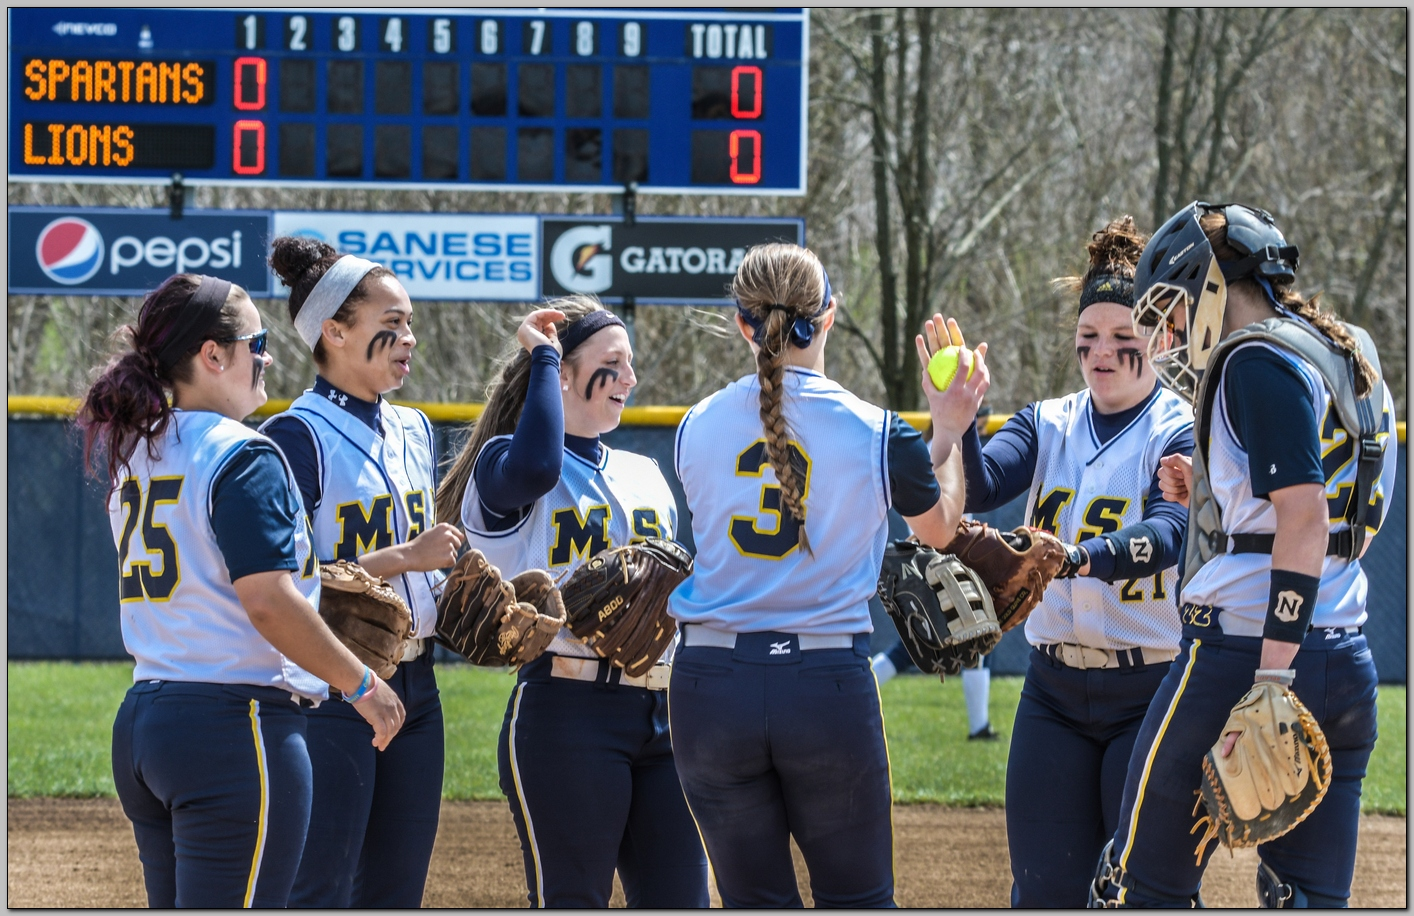 Softball season comes to an end in HCAC tournament semi-finals